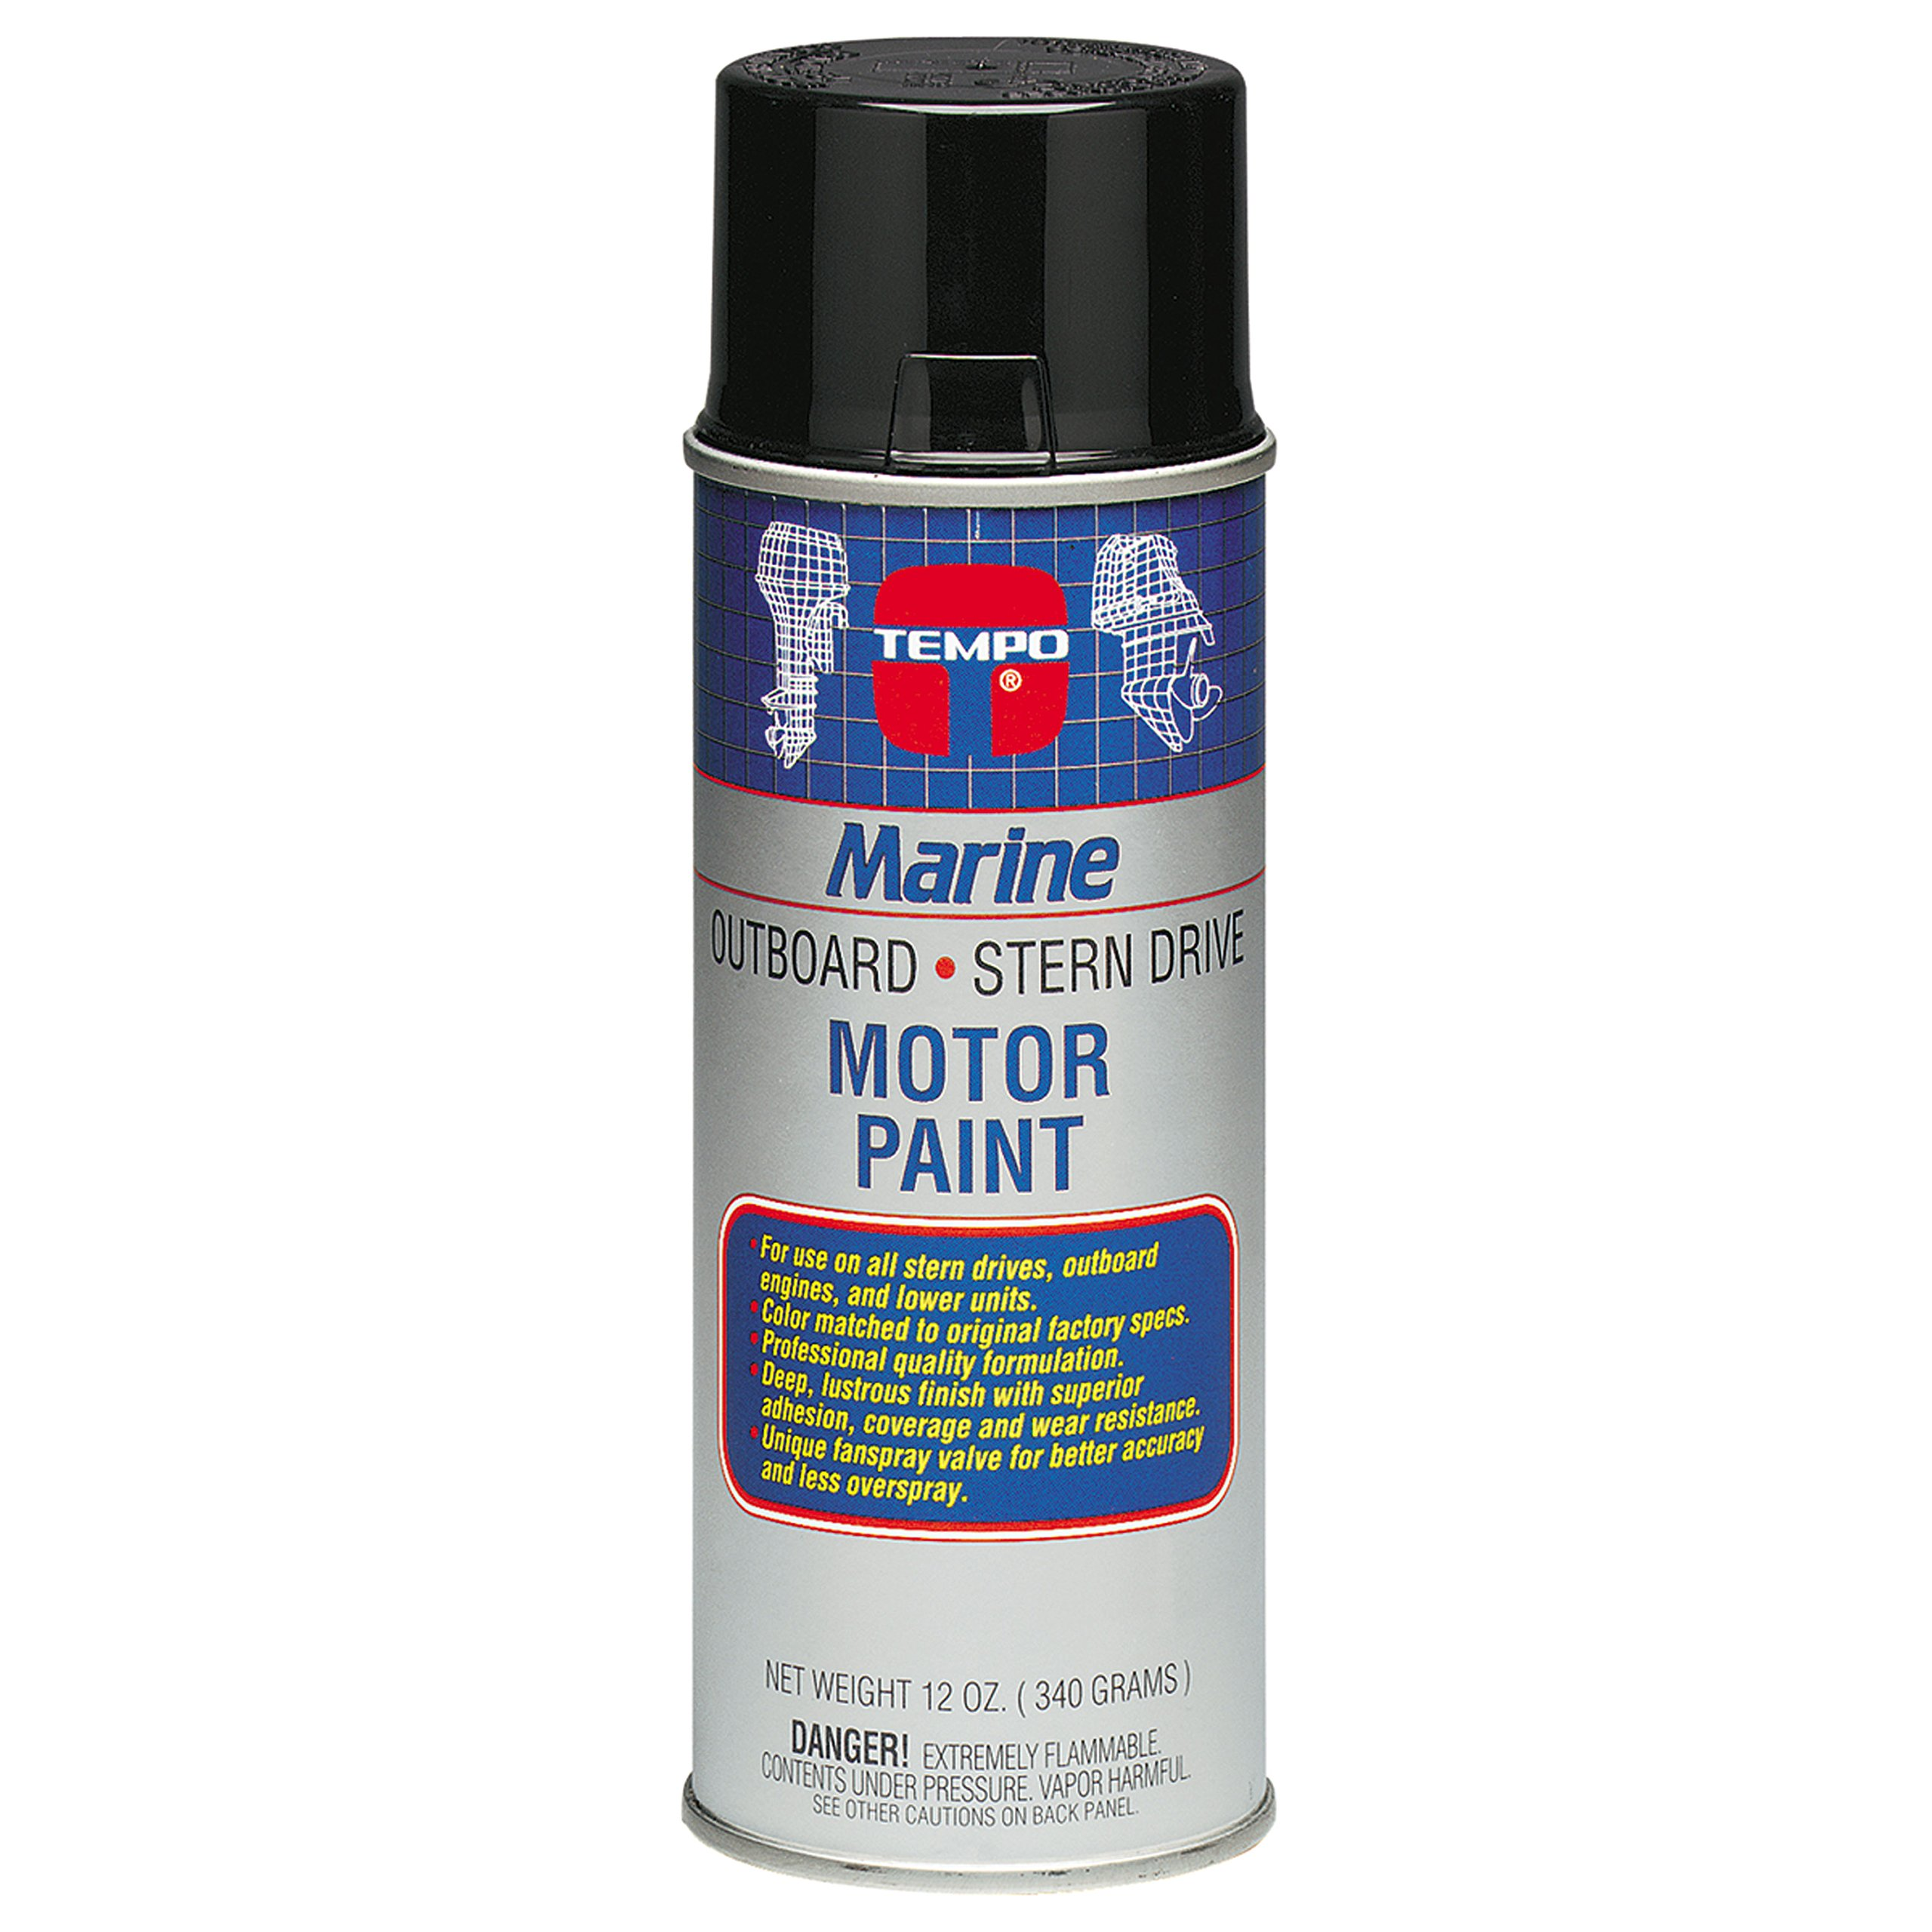 Moeller 025814 Engine Paint - Yamaha Blue Gray, 12 oz. , Package may vary